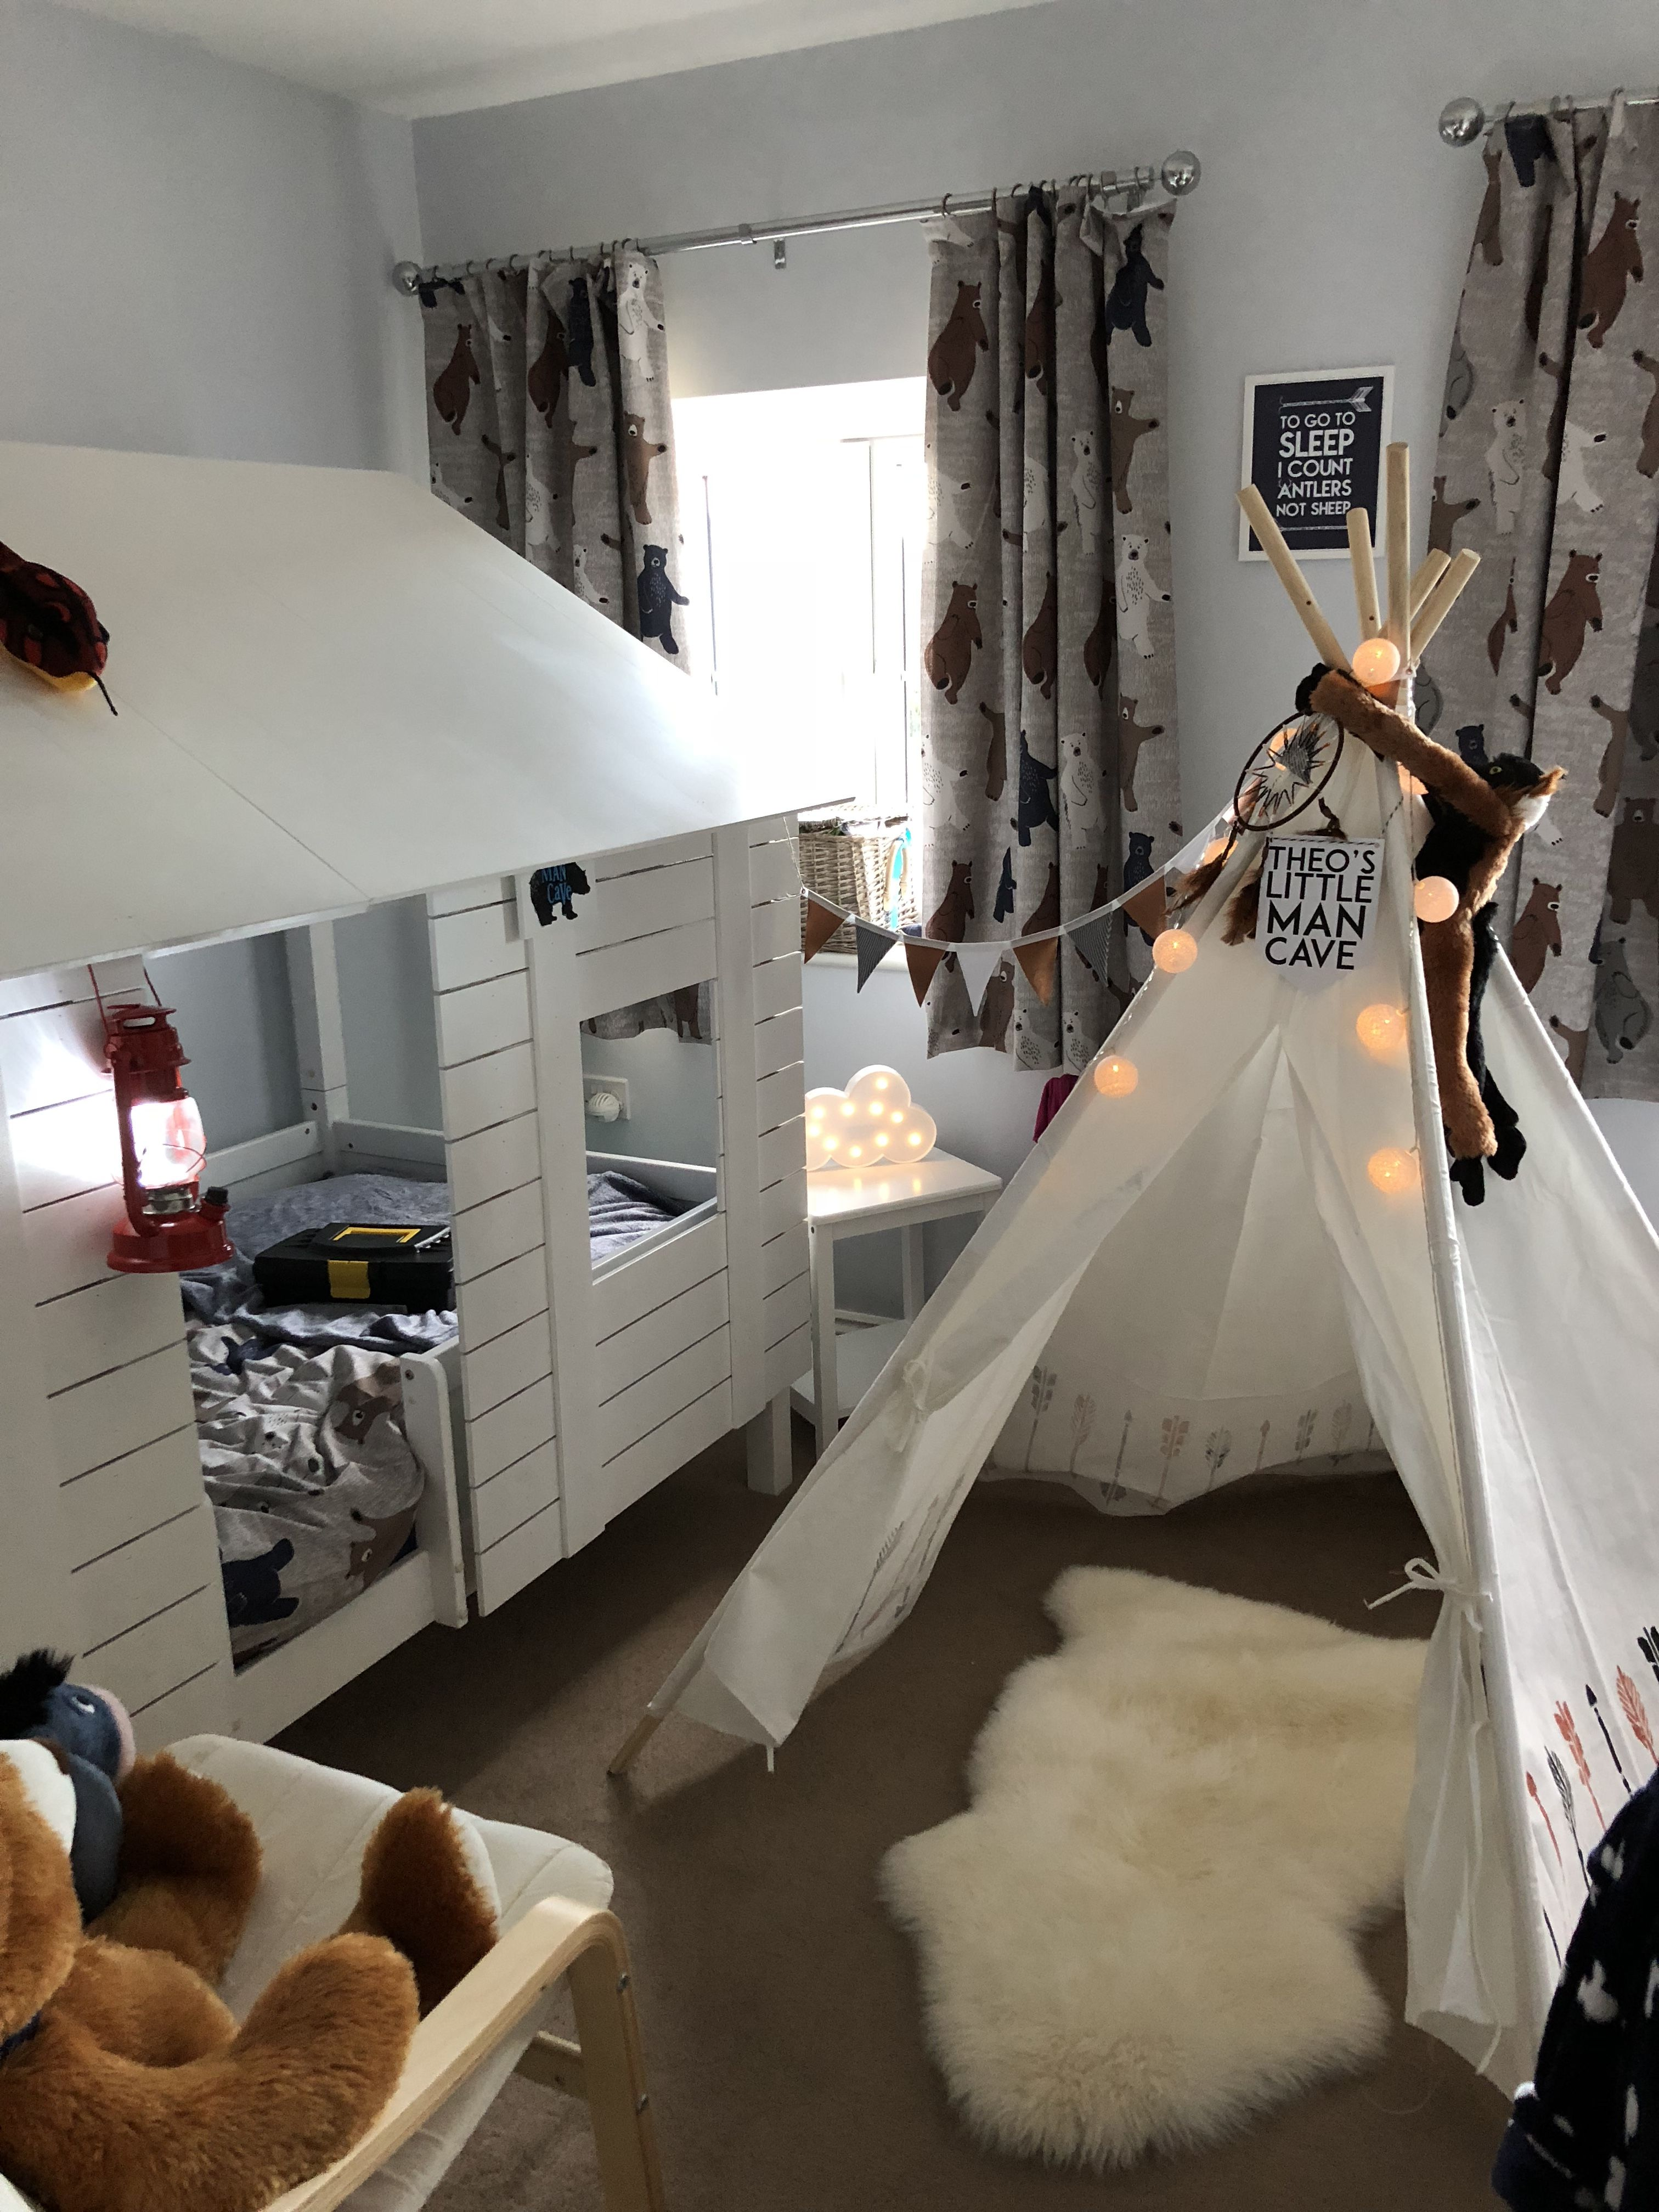 Toddler Bedroom Idea Cabin Bed Teepee Bears Camping Theme